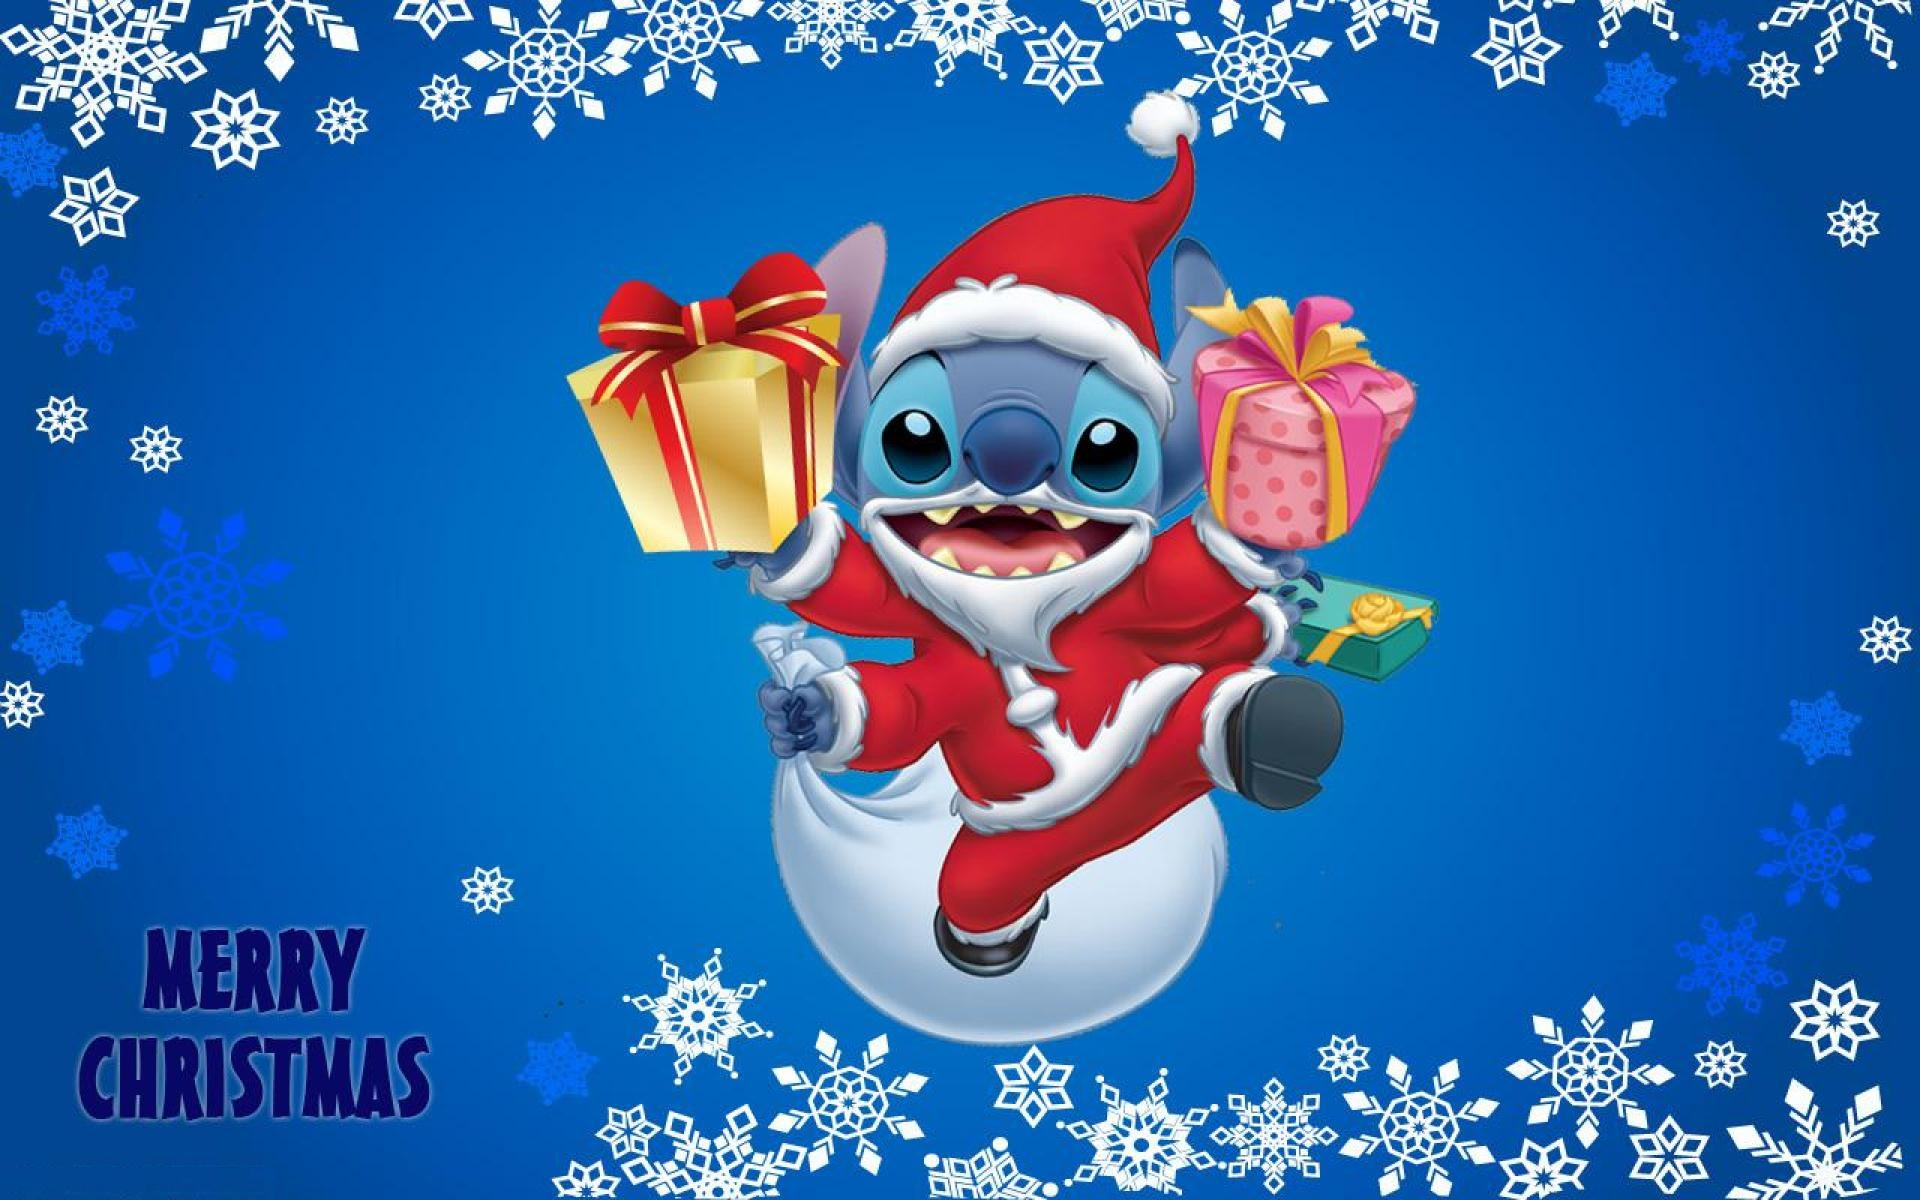 1920x1200 lilo and stitch christmas wallpapers hd hd background wallpapers ...